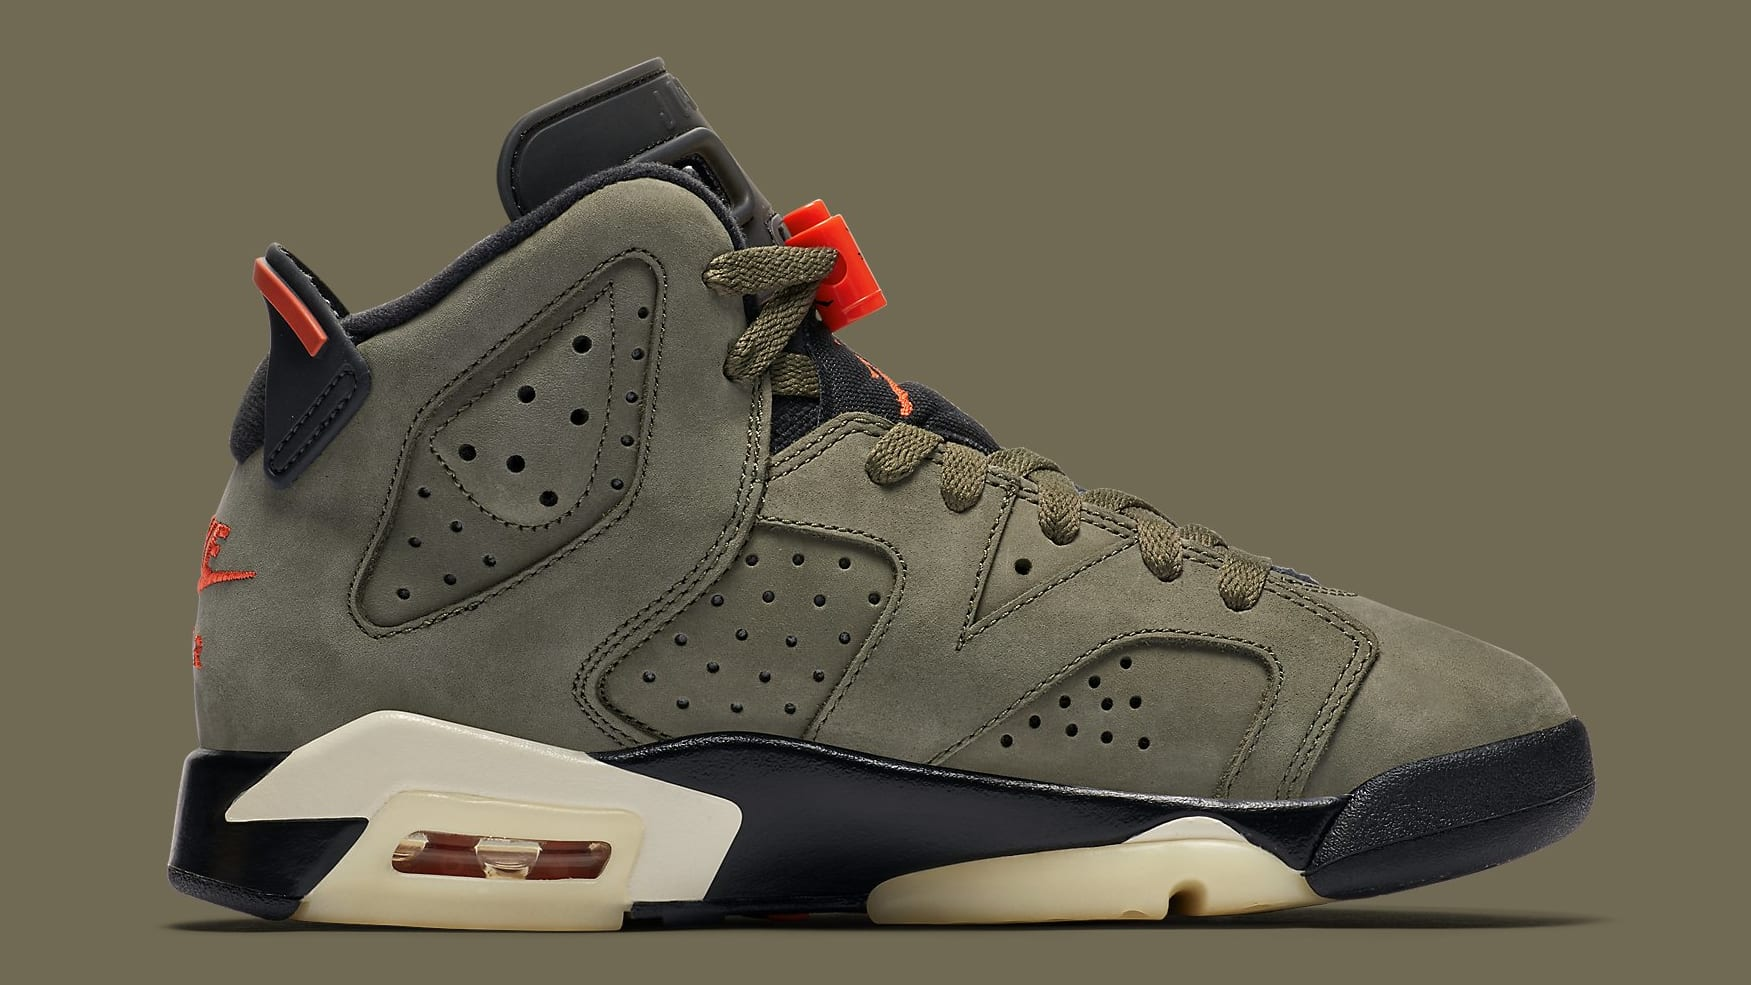 buy online 38577 00f3a Travis Scott Air Jordan 6 VI Medium Olive Release Date ...